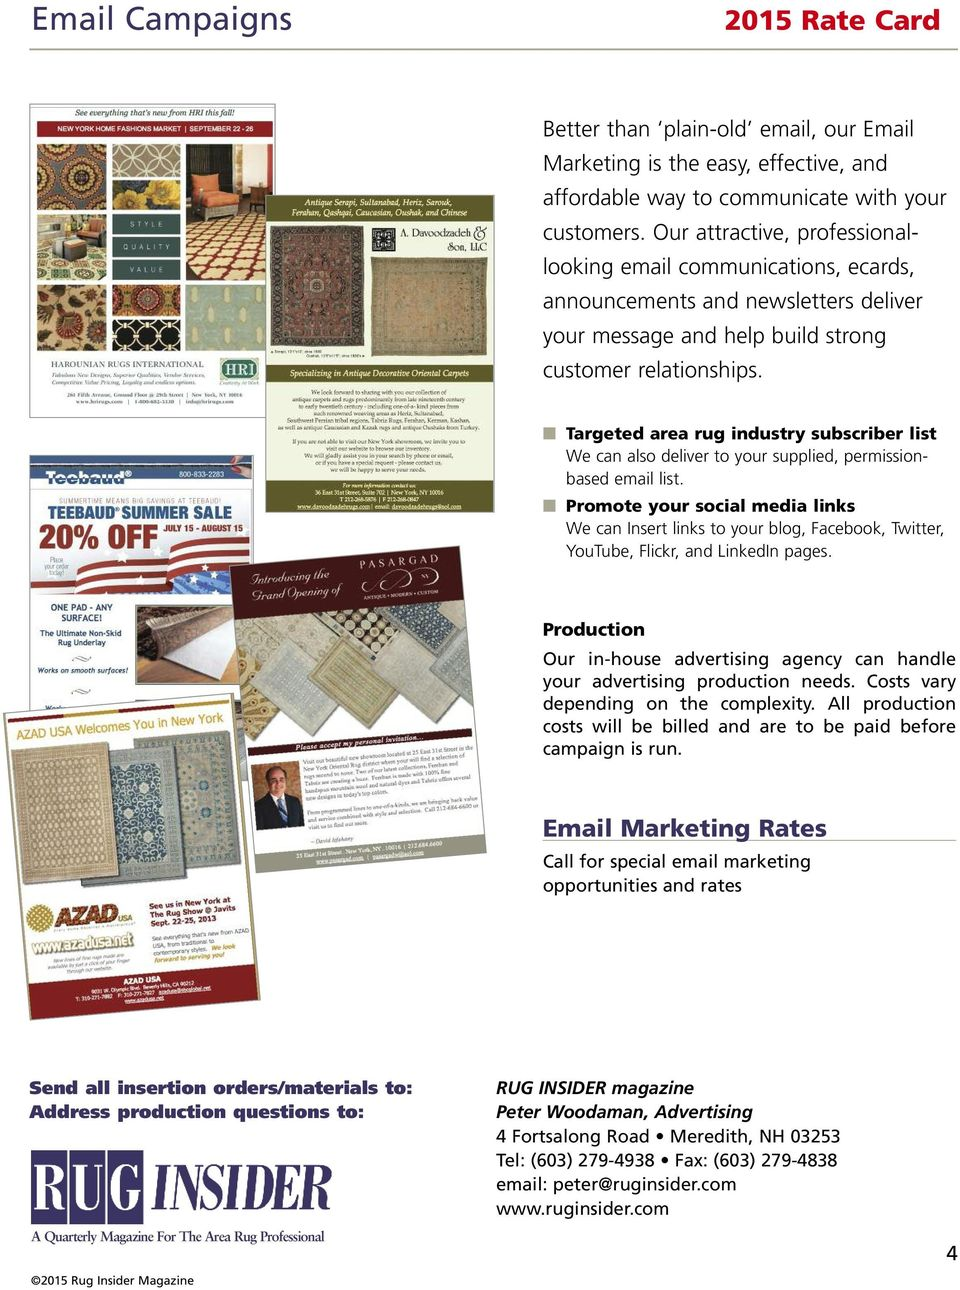 Targeted area rug industry subscriber list We can also deliver to your supplied, permissionbased email list.